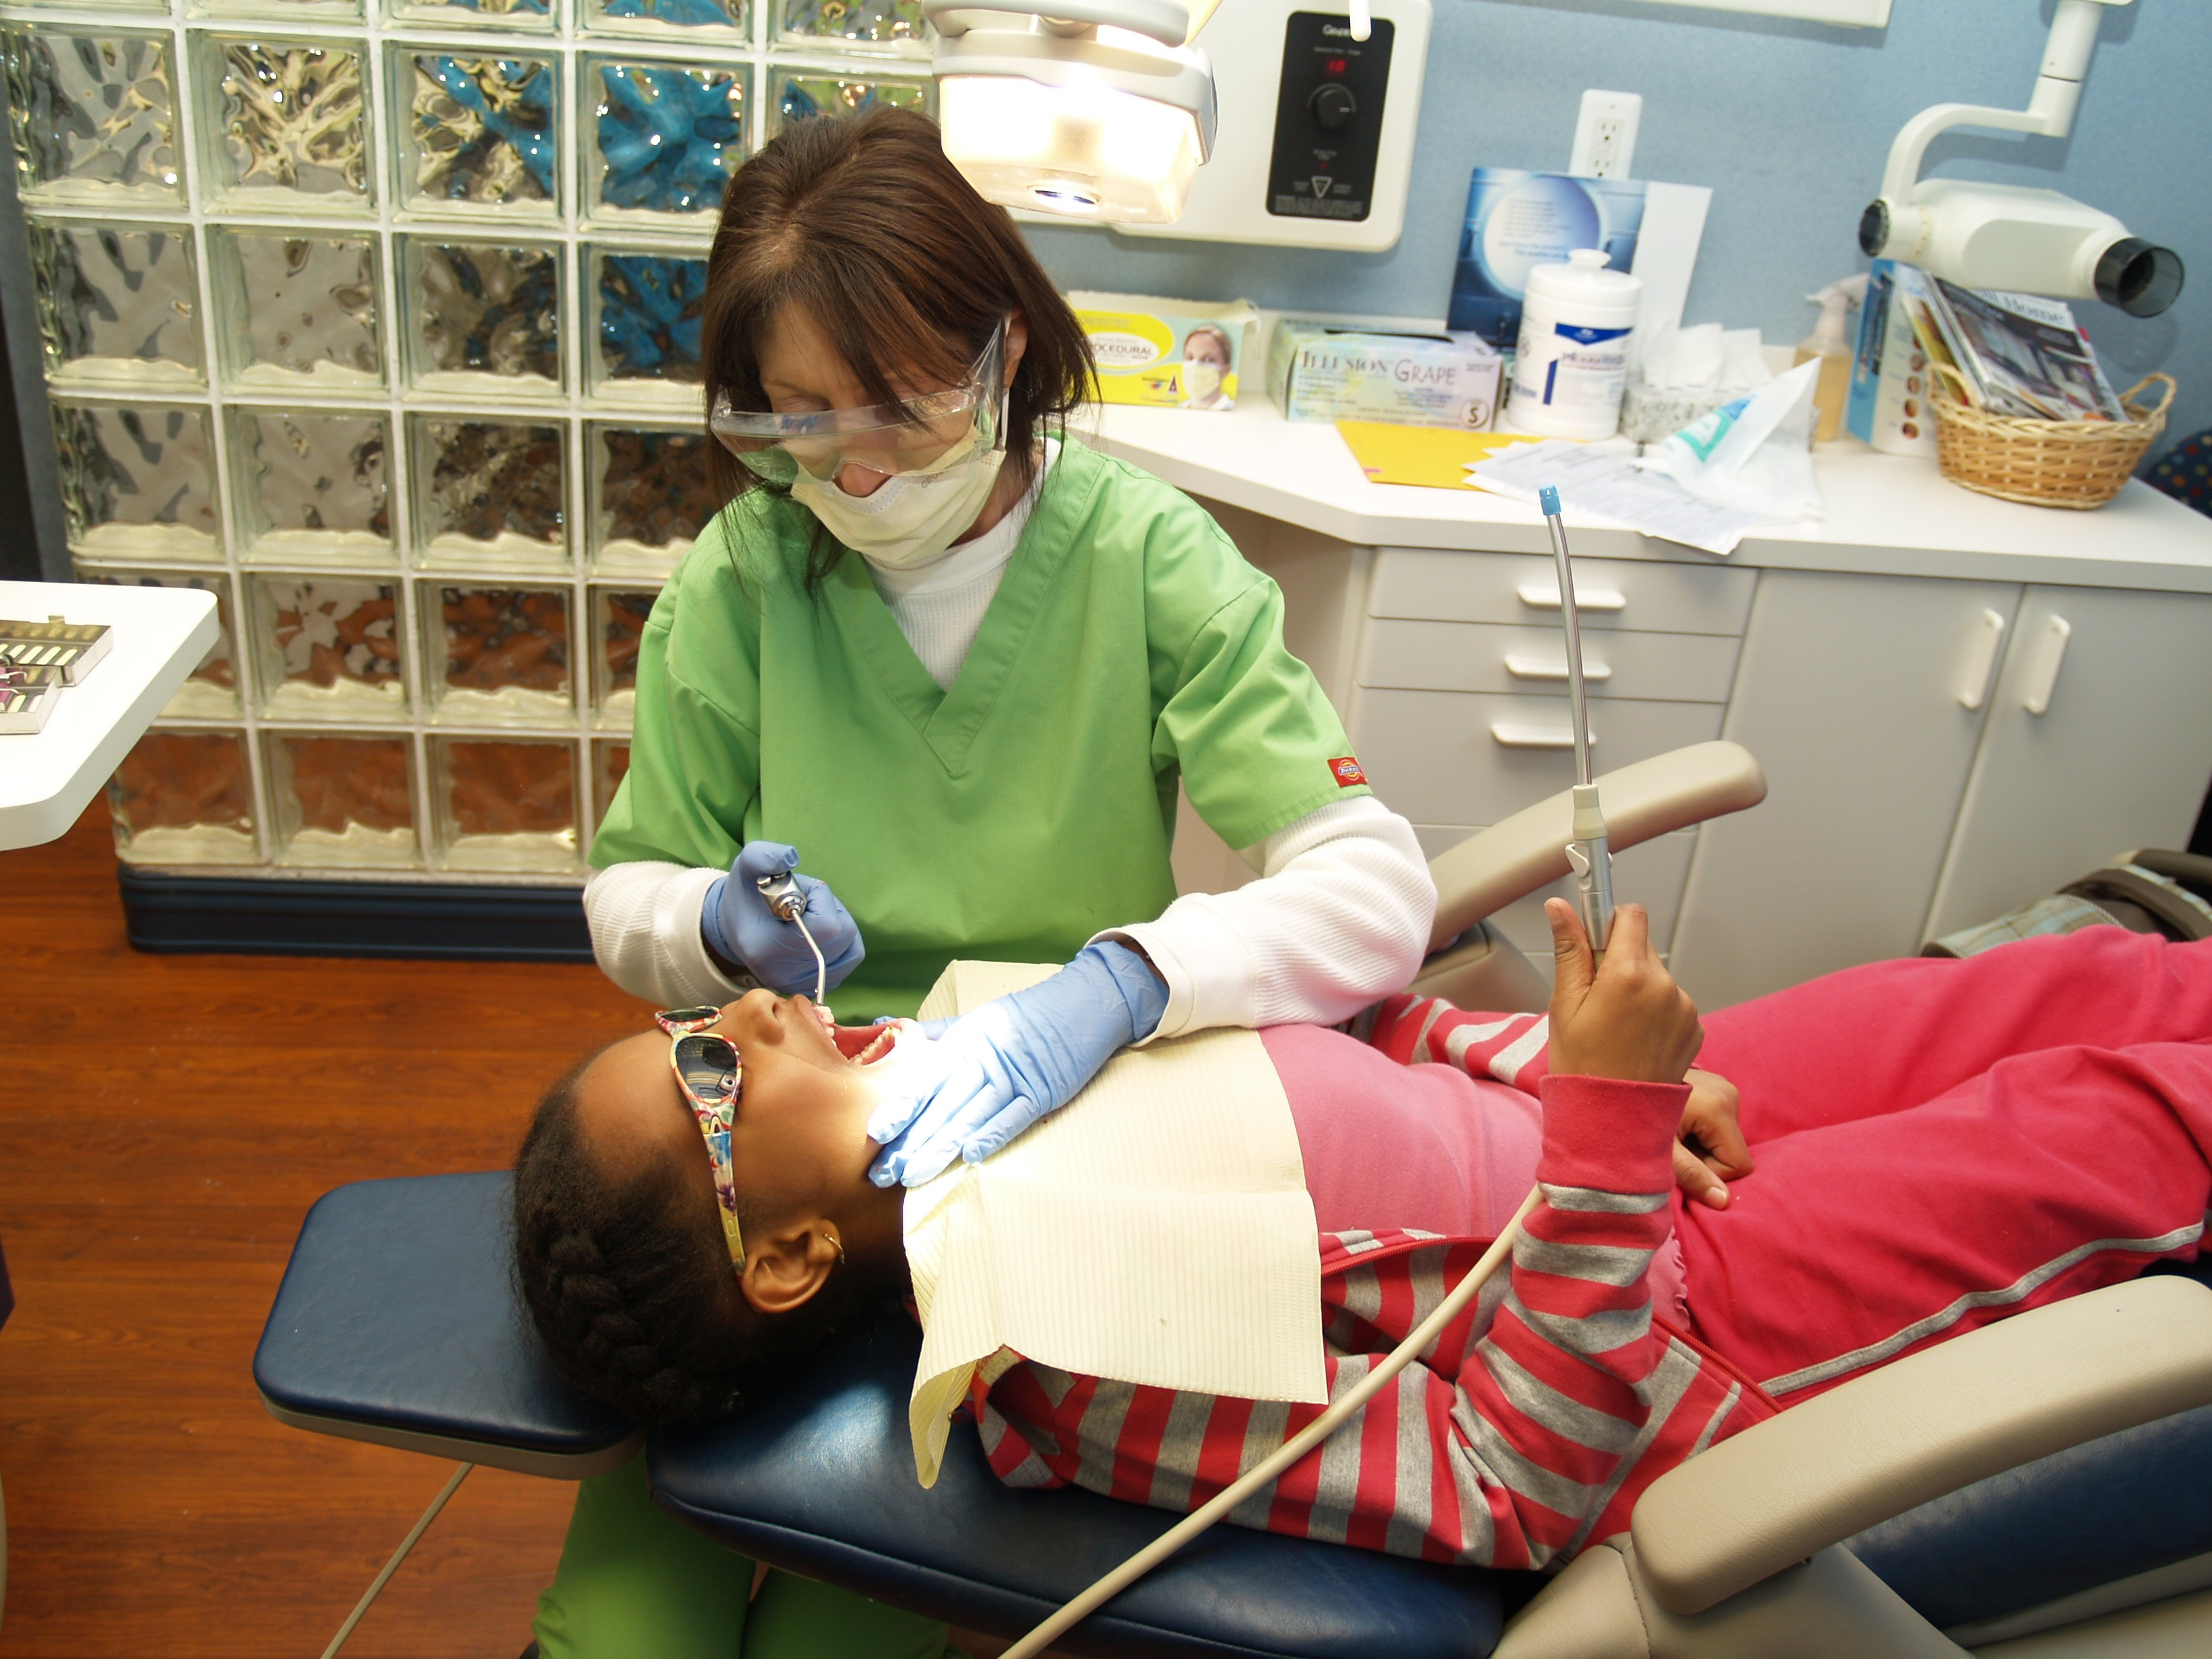 Directory to Low cost Dental Care in Sacramento · Sacramento City College   Dental Hygiene Clinic 558-2303 3835 Freeport Blvd, Sacramento Students and